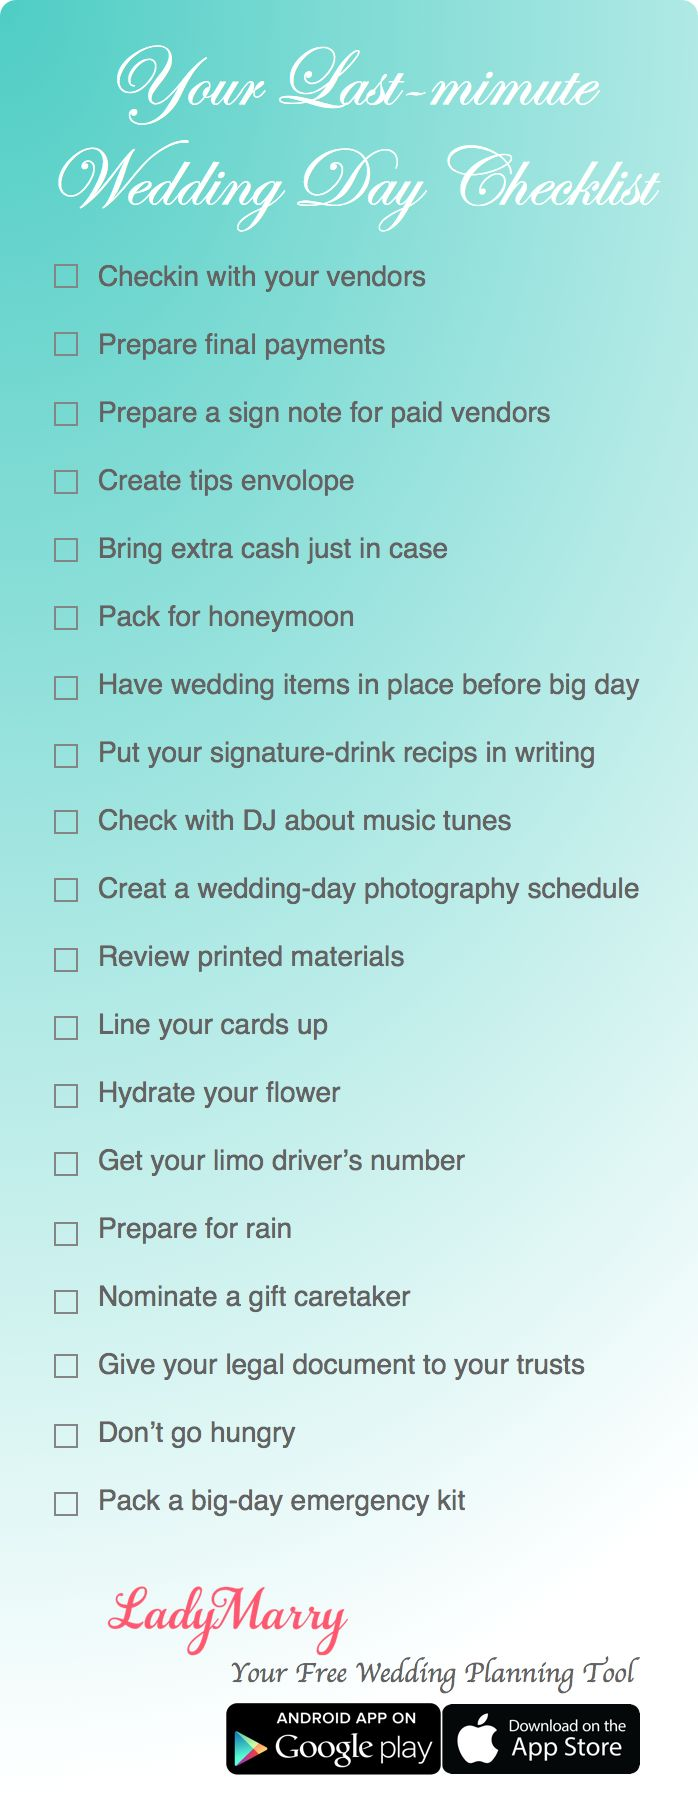 wedding planning checklist spreadsheet free%0A  LadyMarry you  free wedding planning  app